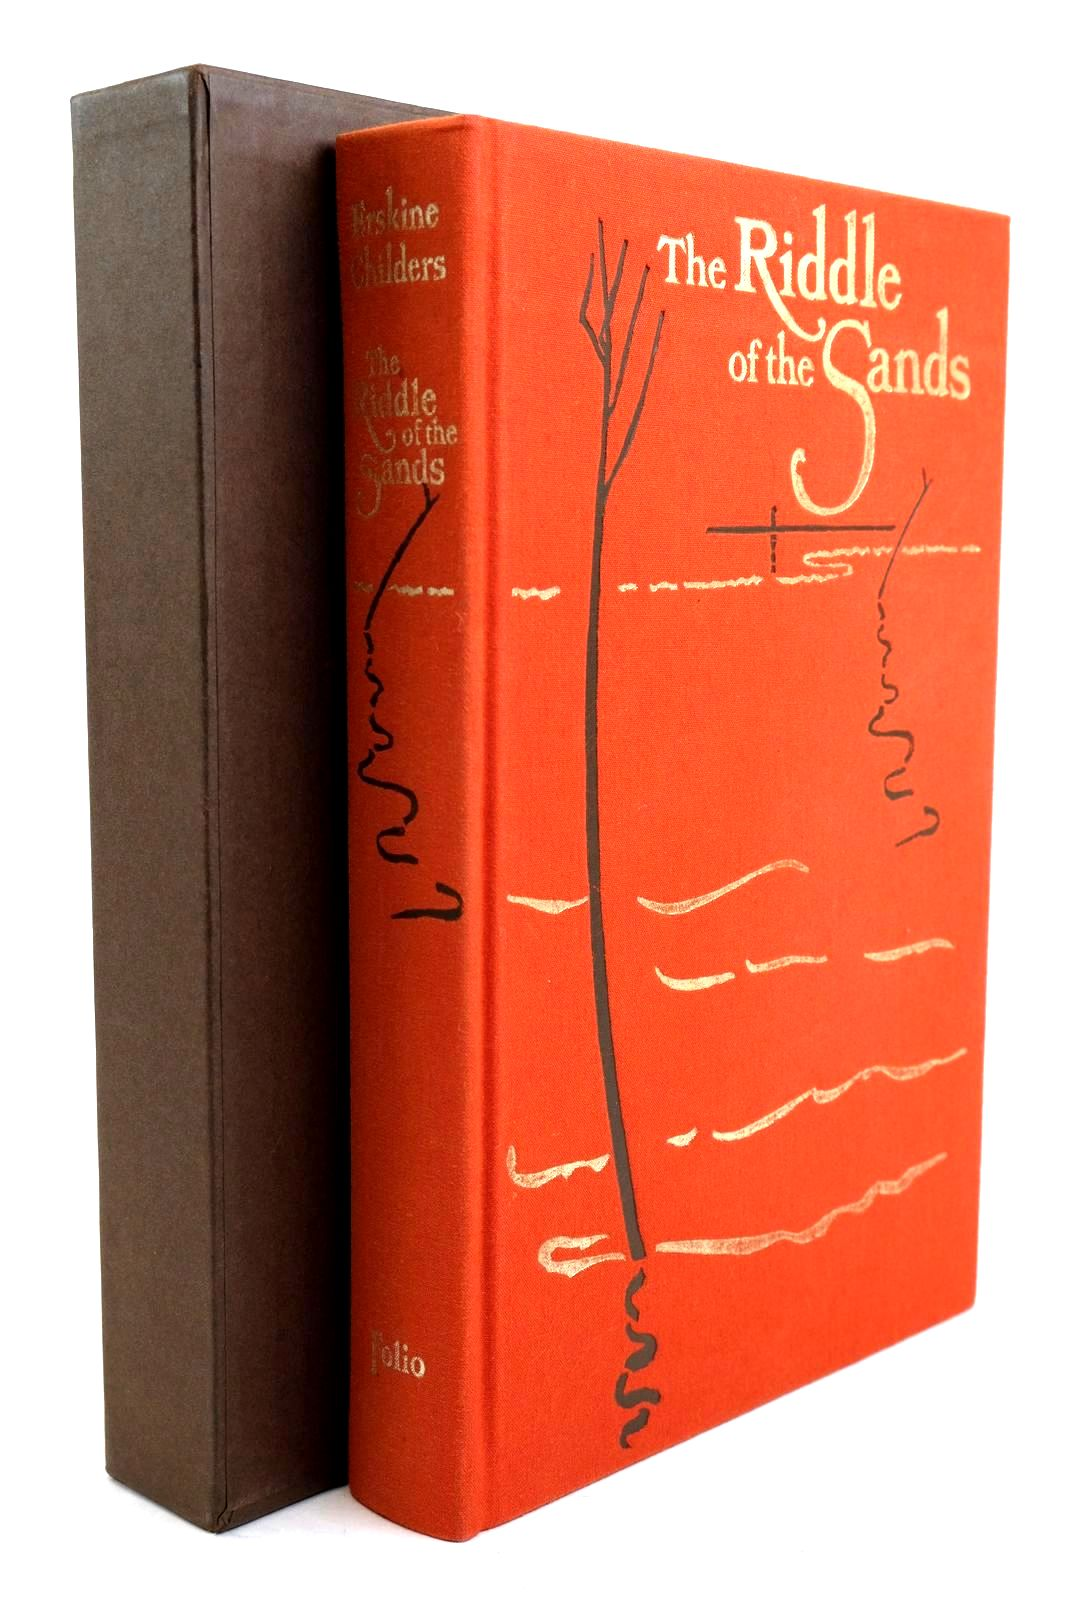 Photo of THE RIDDLE OF THE SANDS written by Childers, Erskine illustrated by Whistler, Daniel published by Folio Society (STOCK CODE: 1320268)  for sale by Stella & Rose's Books